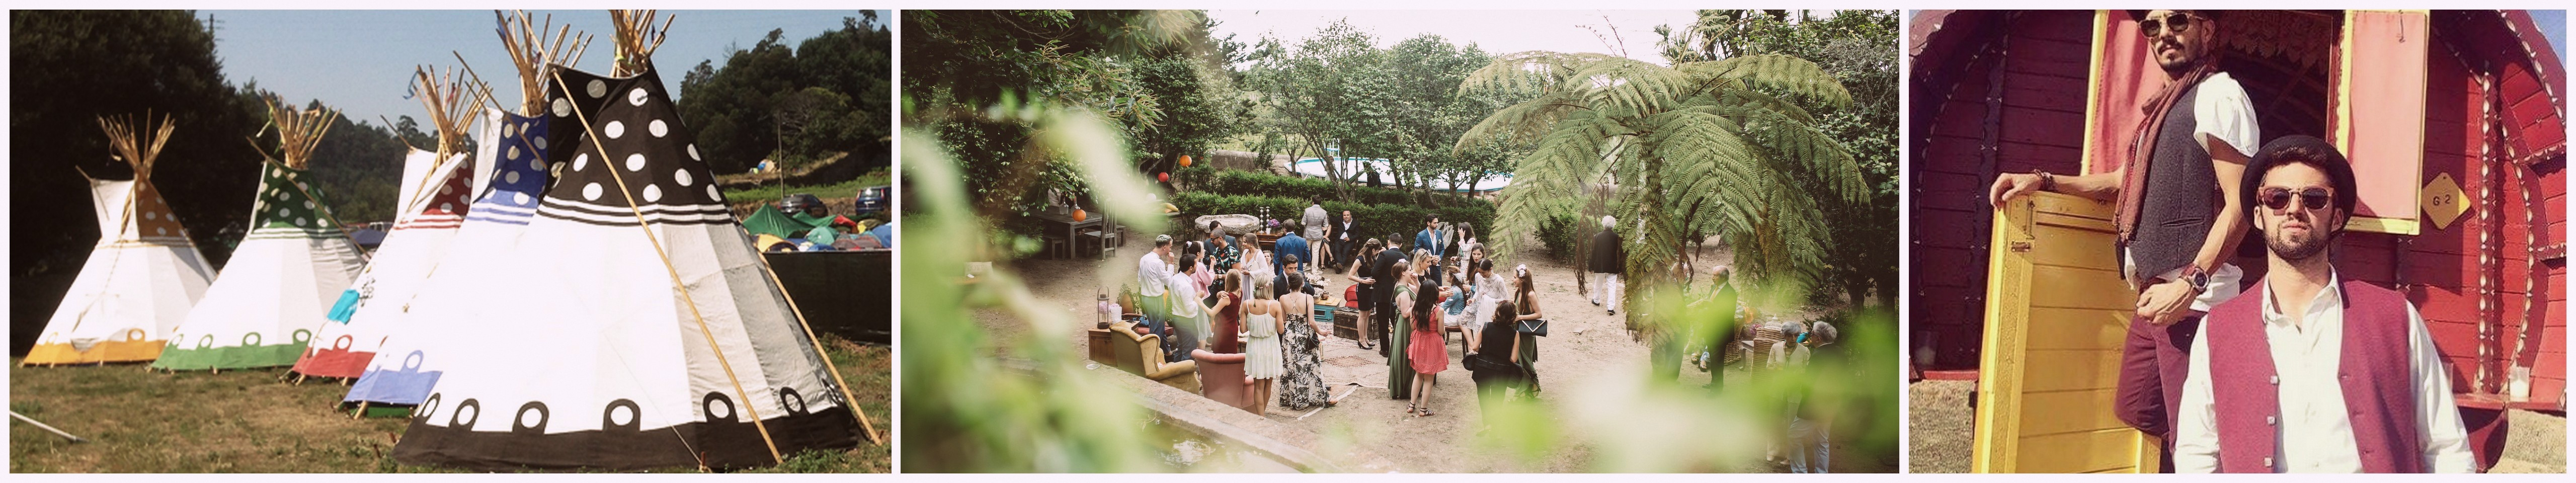 glamping-wedding-festival-wedding-the-quinta-my-vintage-wedding-portugal